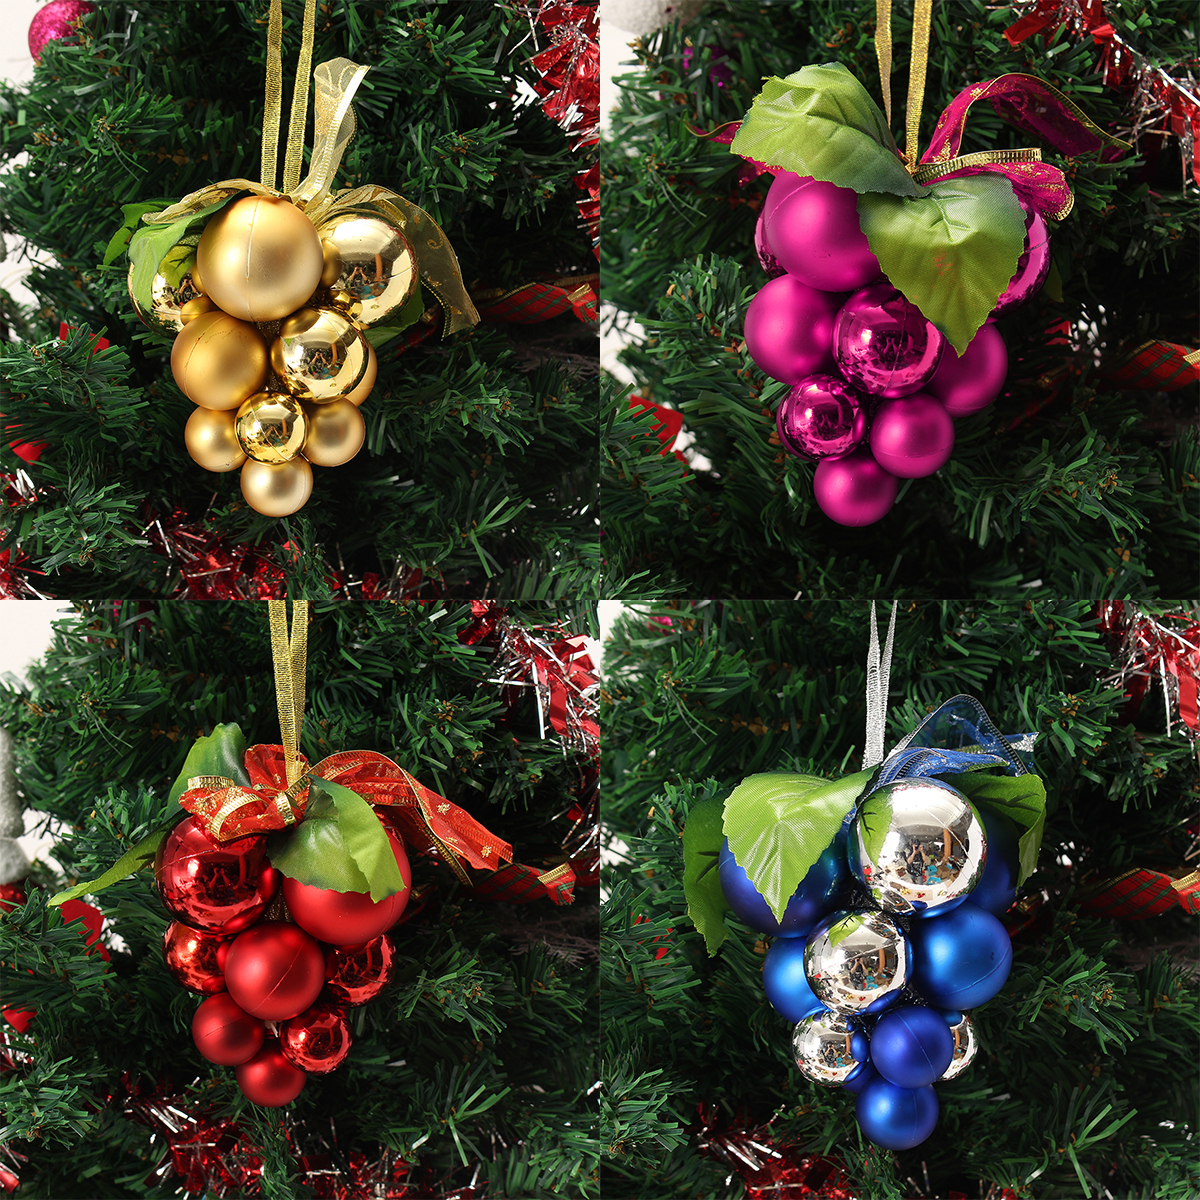 Christmas Ball Grape Strings Tree Decoration Ornaments Pendant Ball Hanging Adornments - Photo: 1